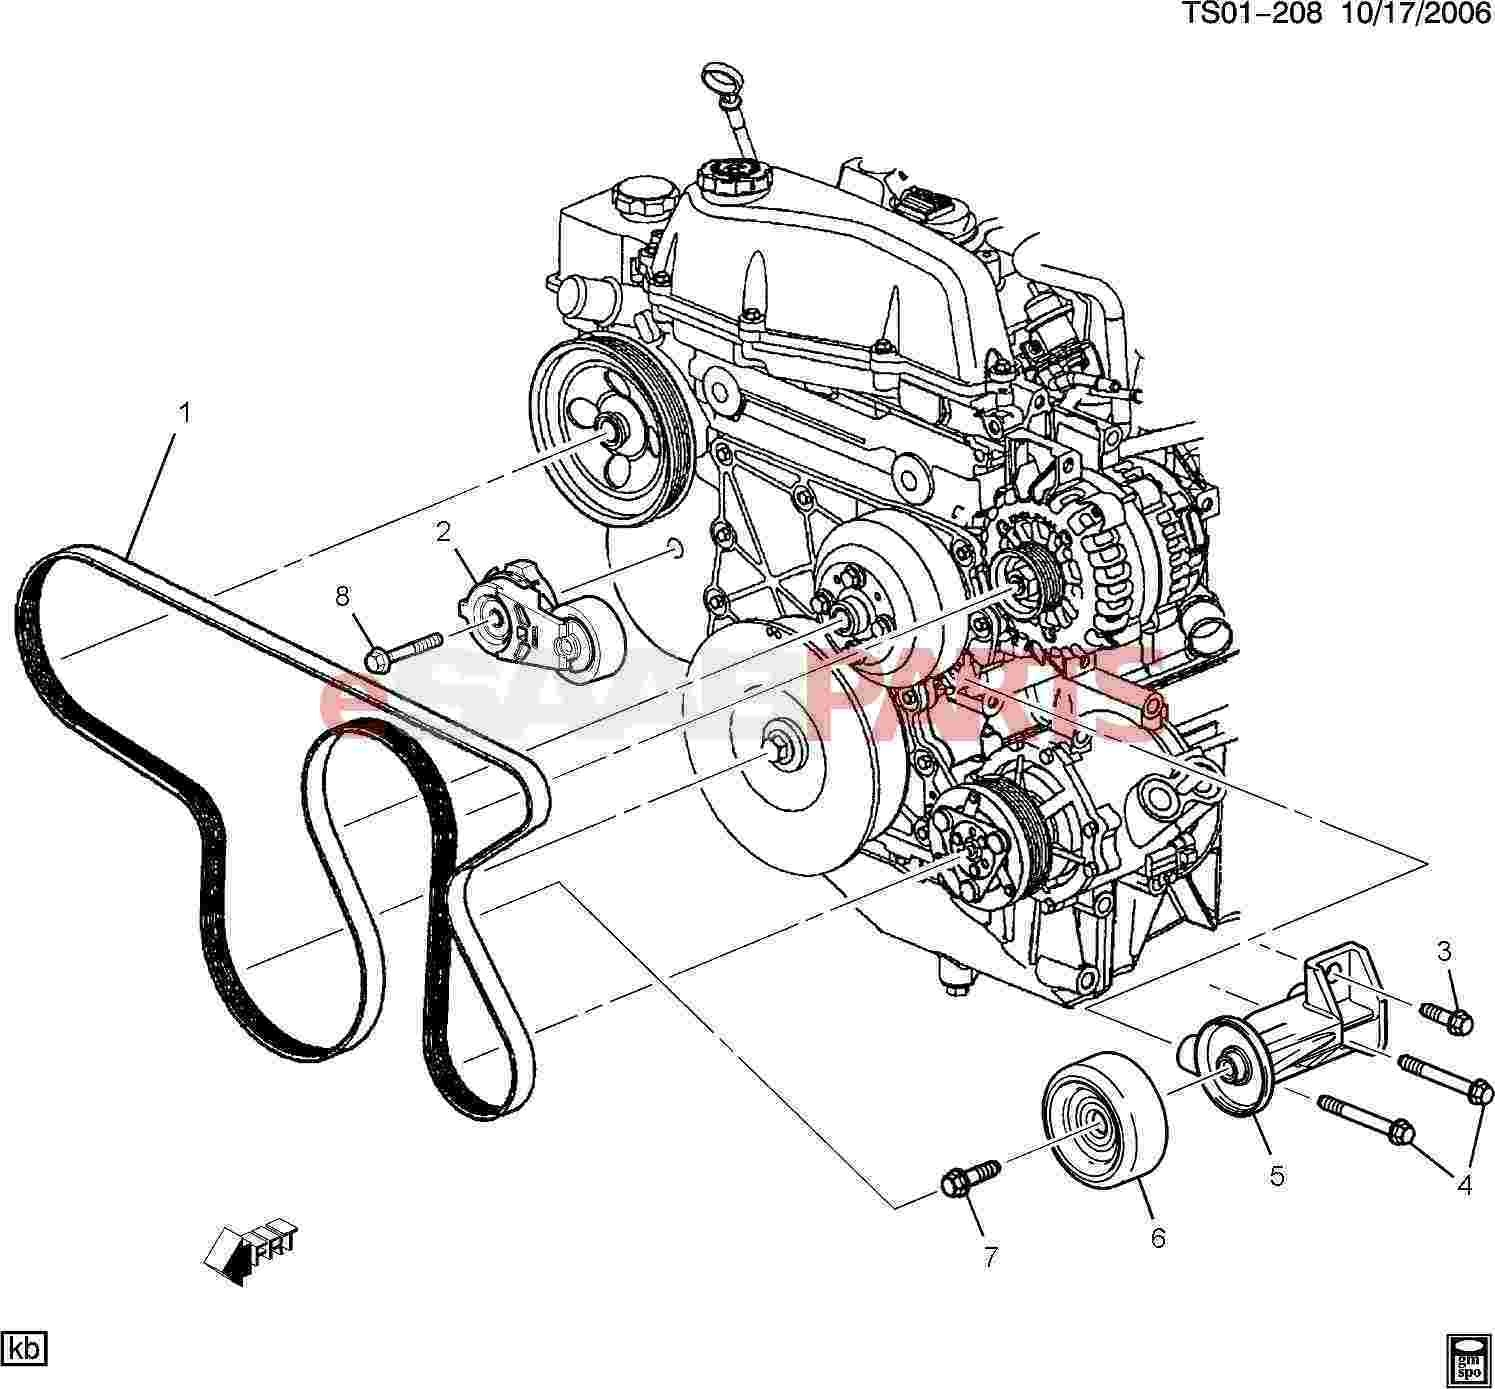 hight resolution of 2003 gmc yukon engine diagram book diagram schema 2007 gmc yukon denali engine diagram gmc yukon engine diagram